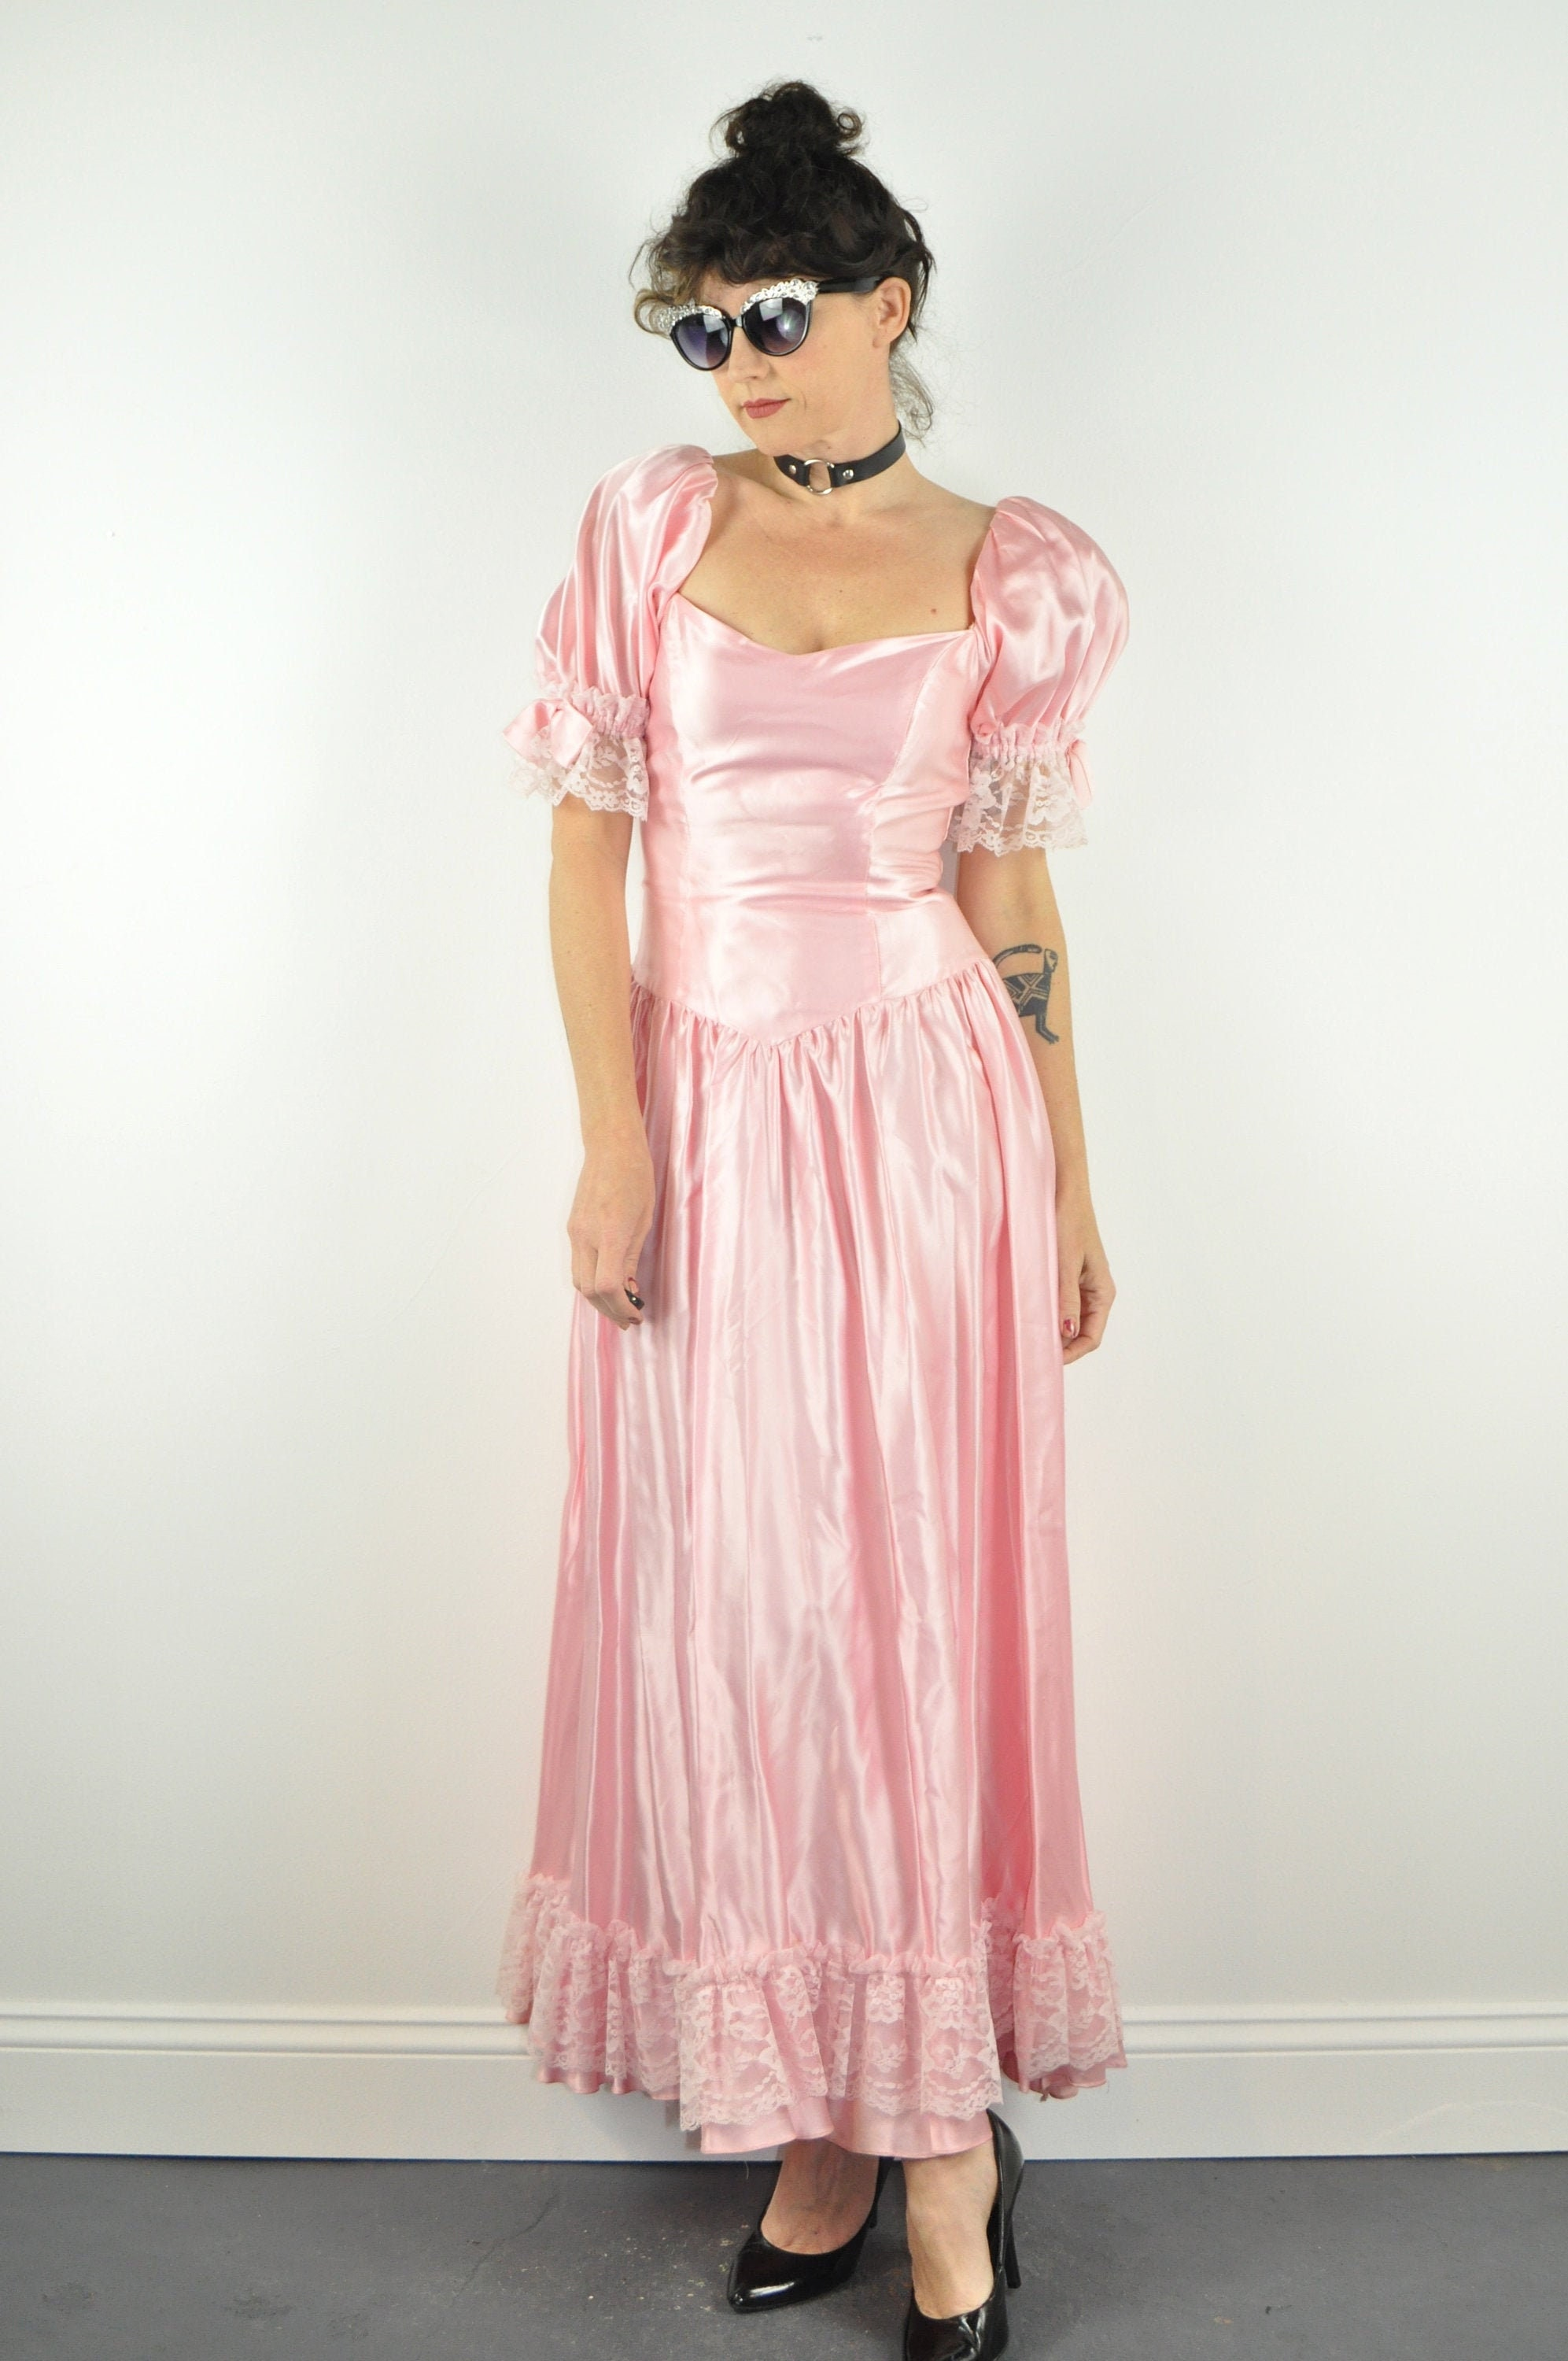 80s Dresses | Casual to Party Dresses 80S Pink Prom Dress - Small  Puff Sleeve Vintage Party Lace 1980S Bow $0.00 AT vintagedancer.com